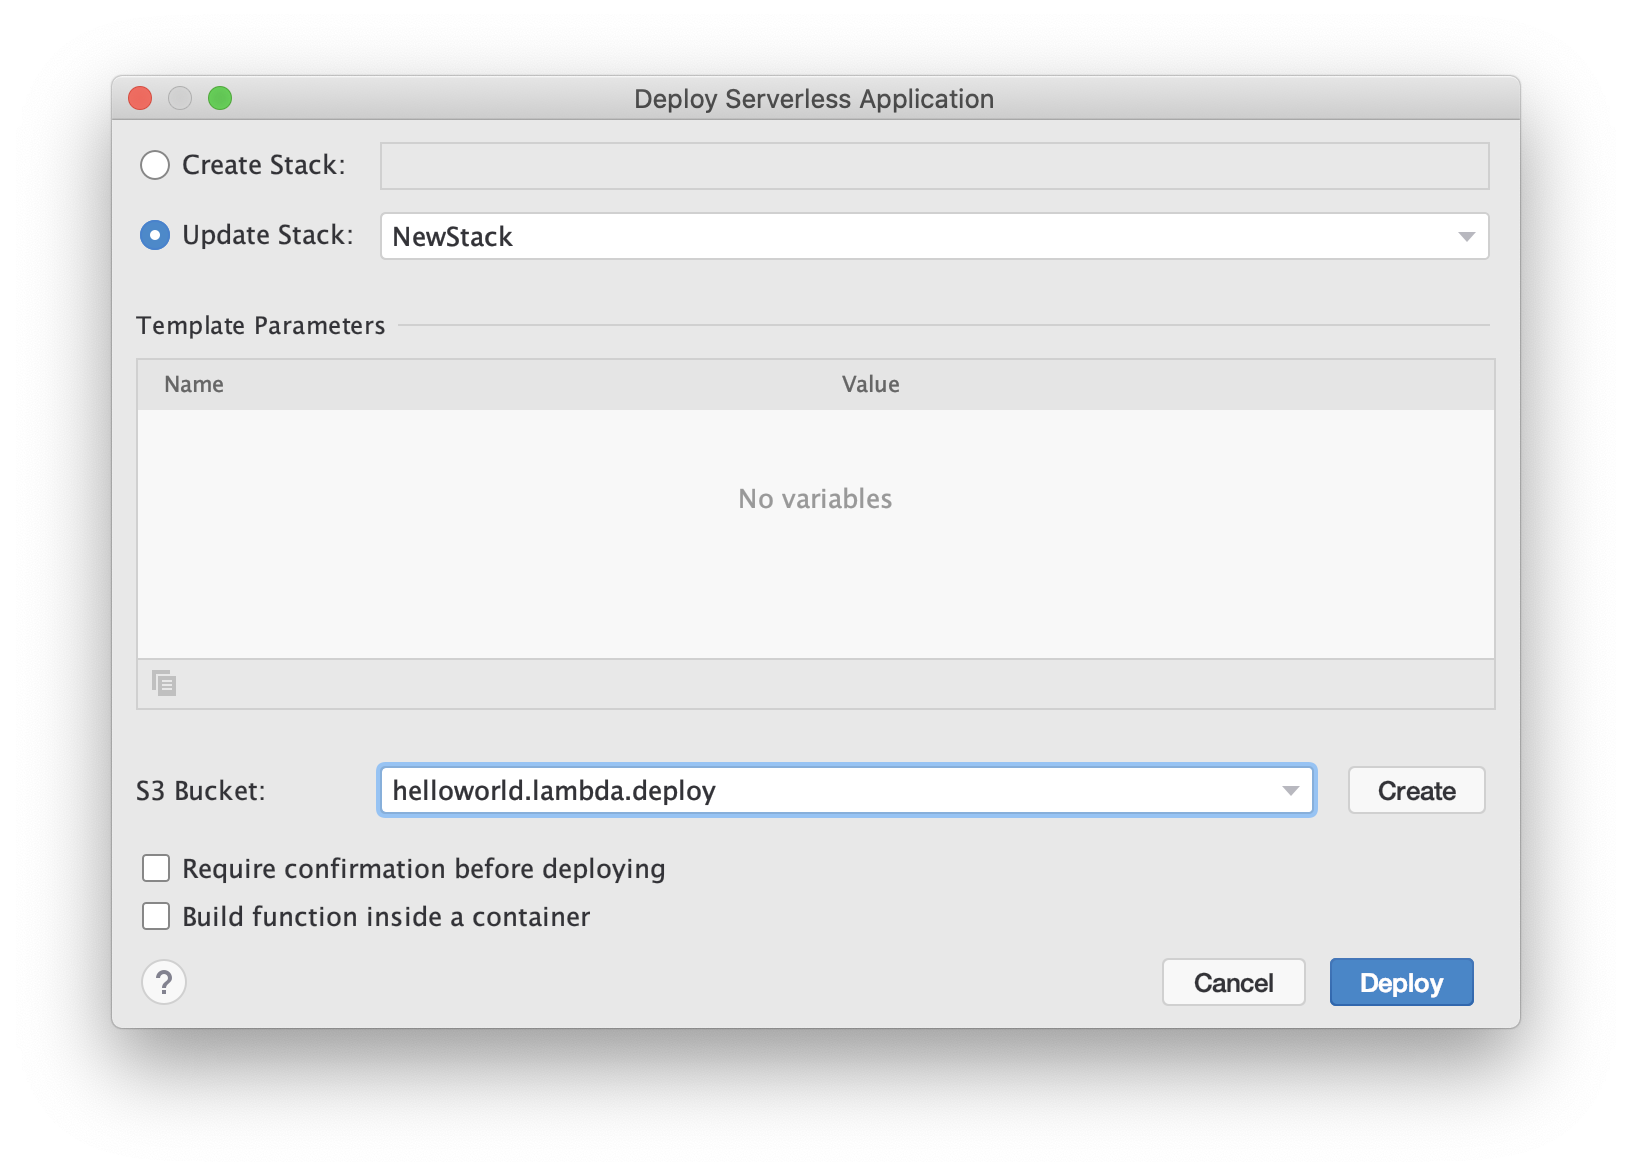 Deploy serverless application dialog